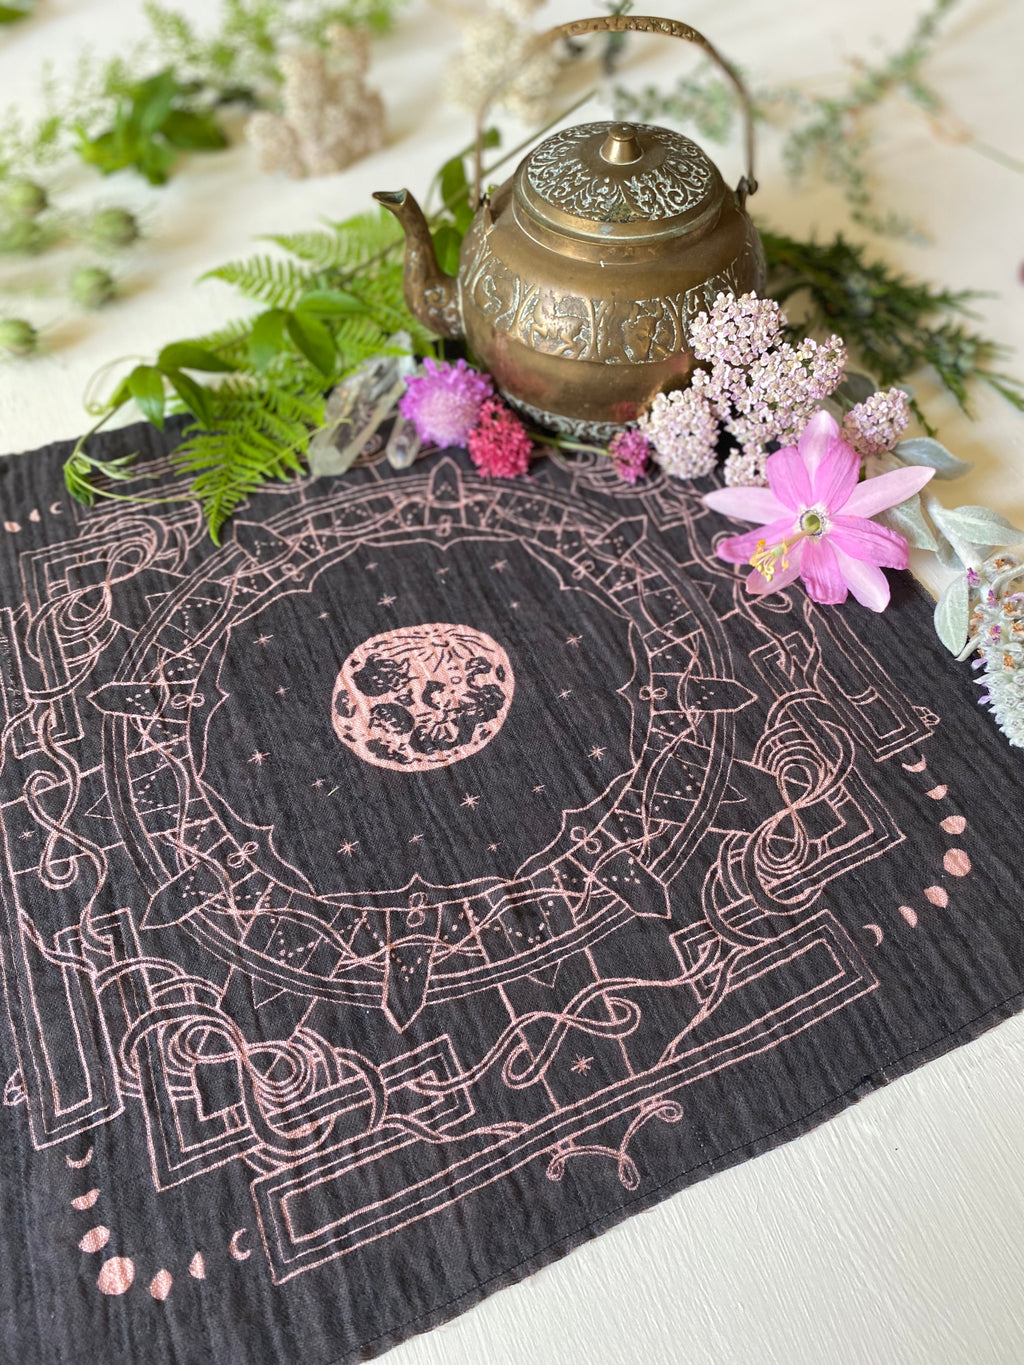 Bandana | Moon Yantra | Plant Dyed | Black + Rose